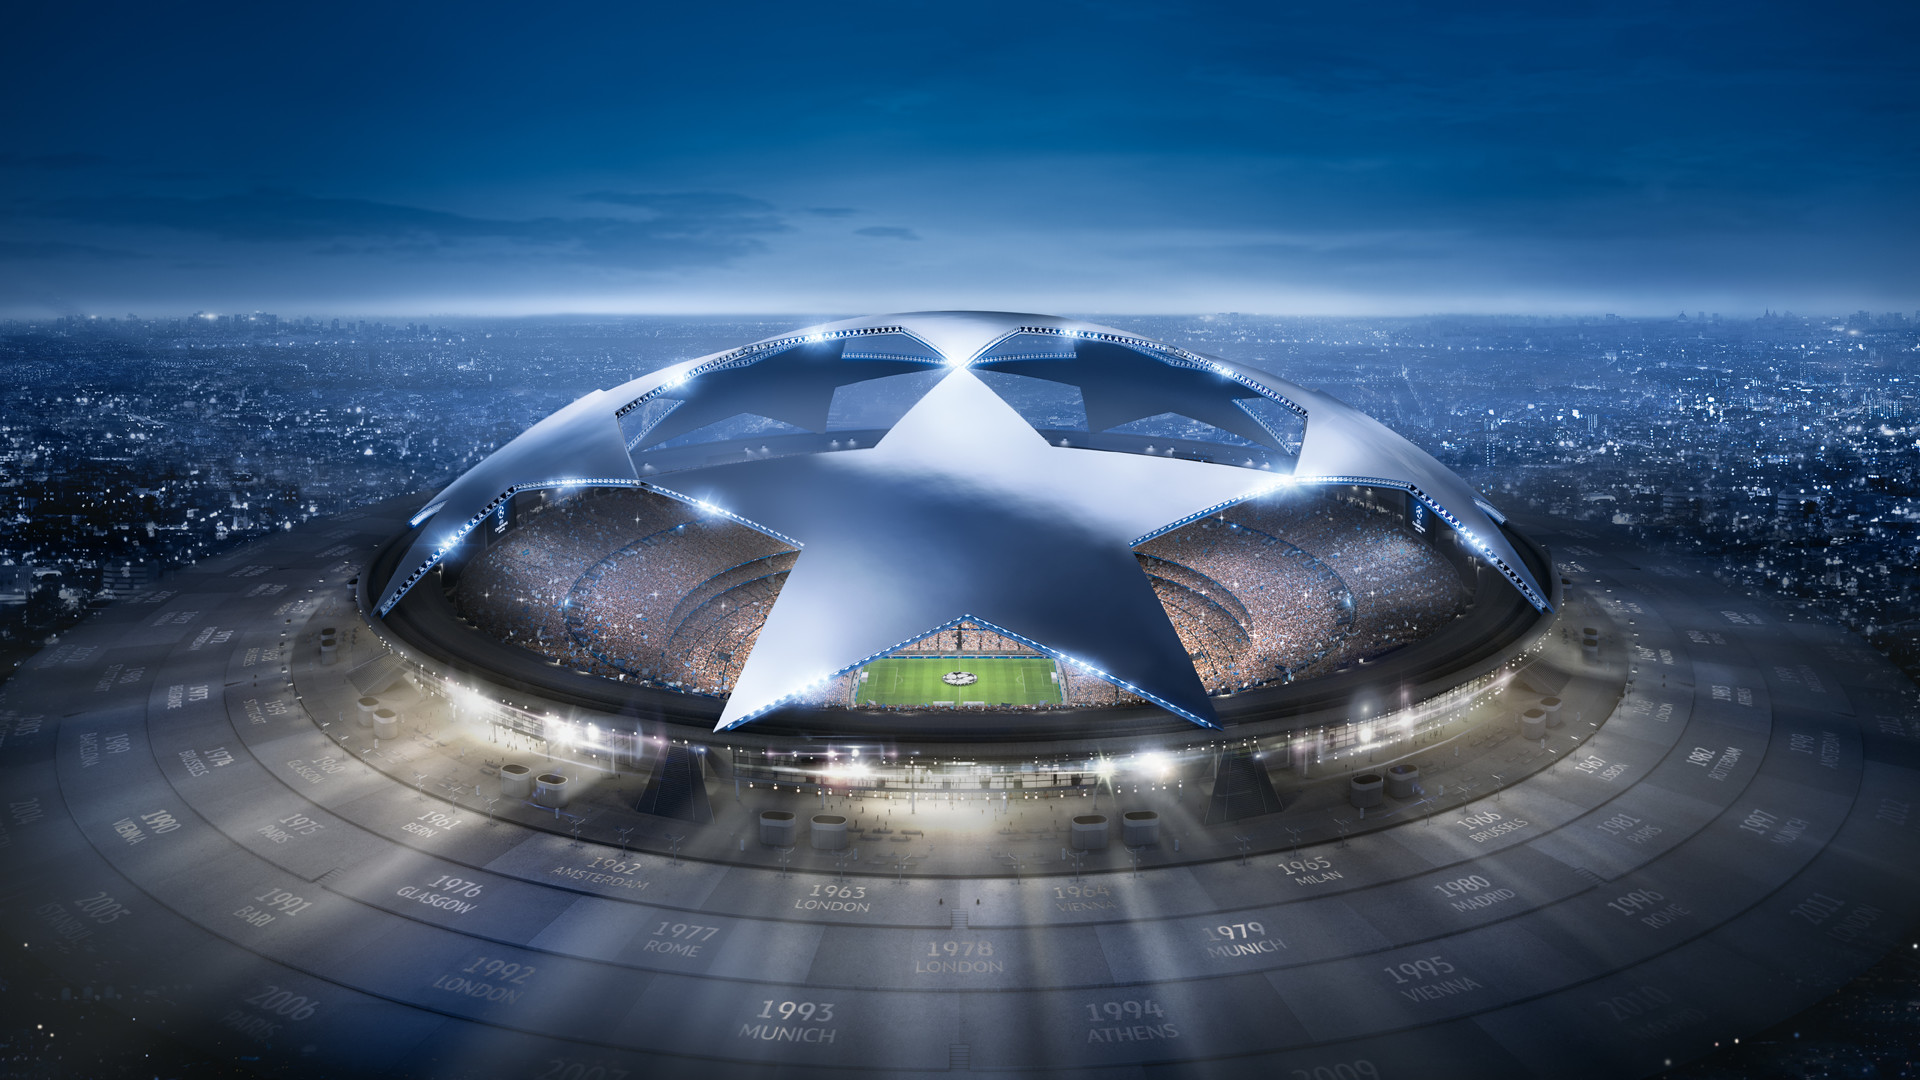 UEFA Champions League: Champions League Wallpaper (67+ Images